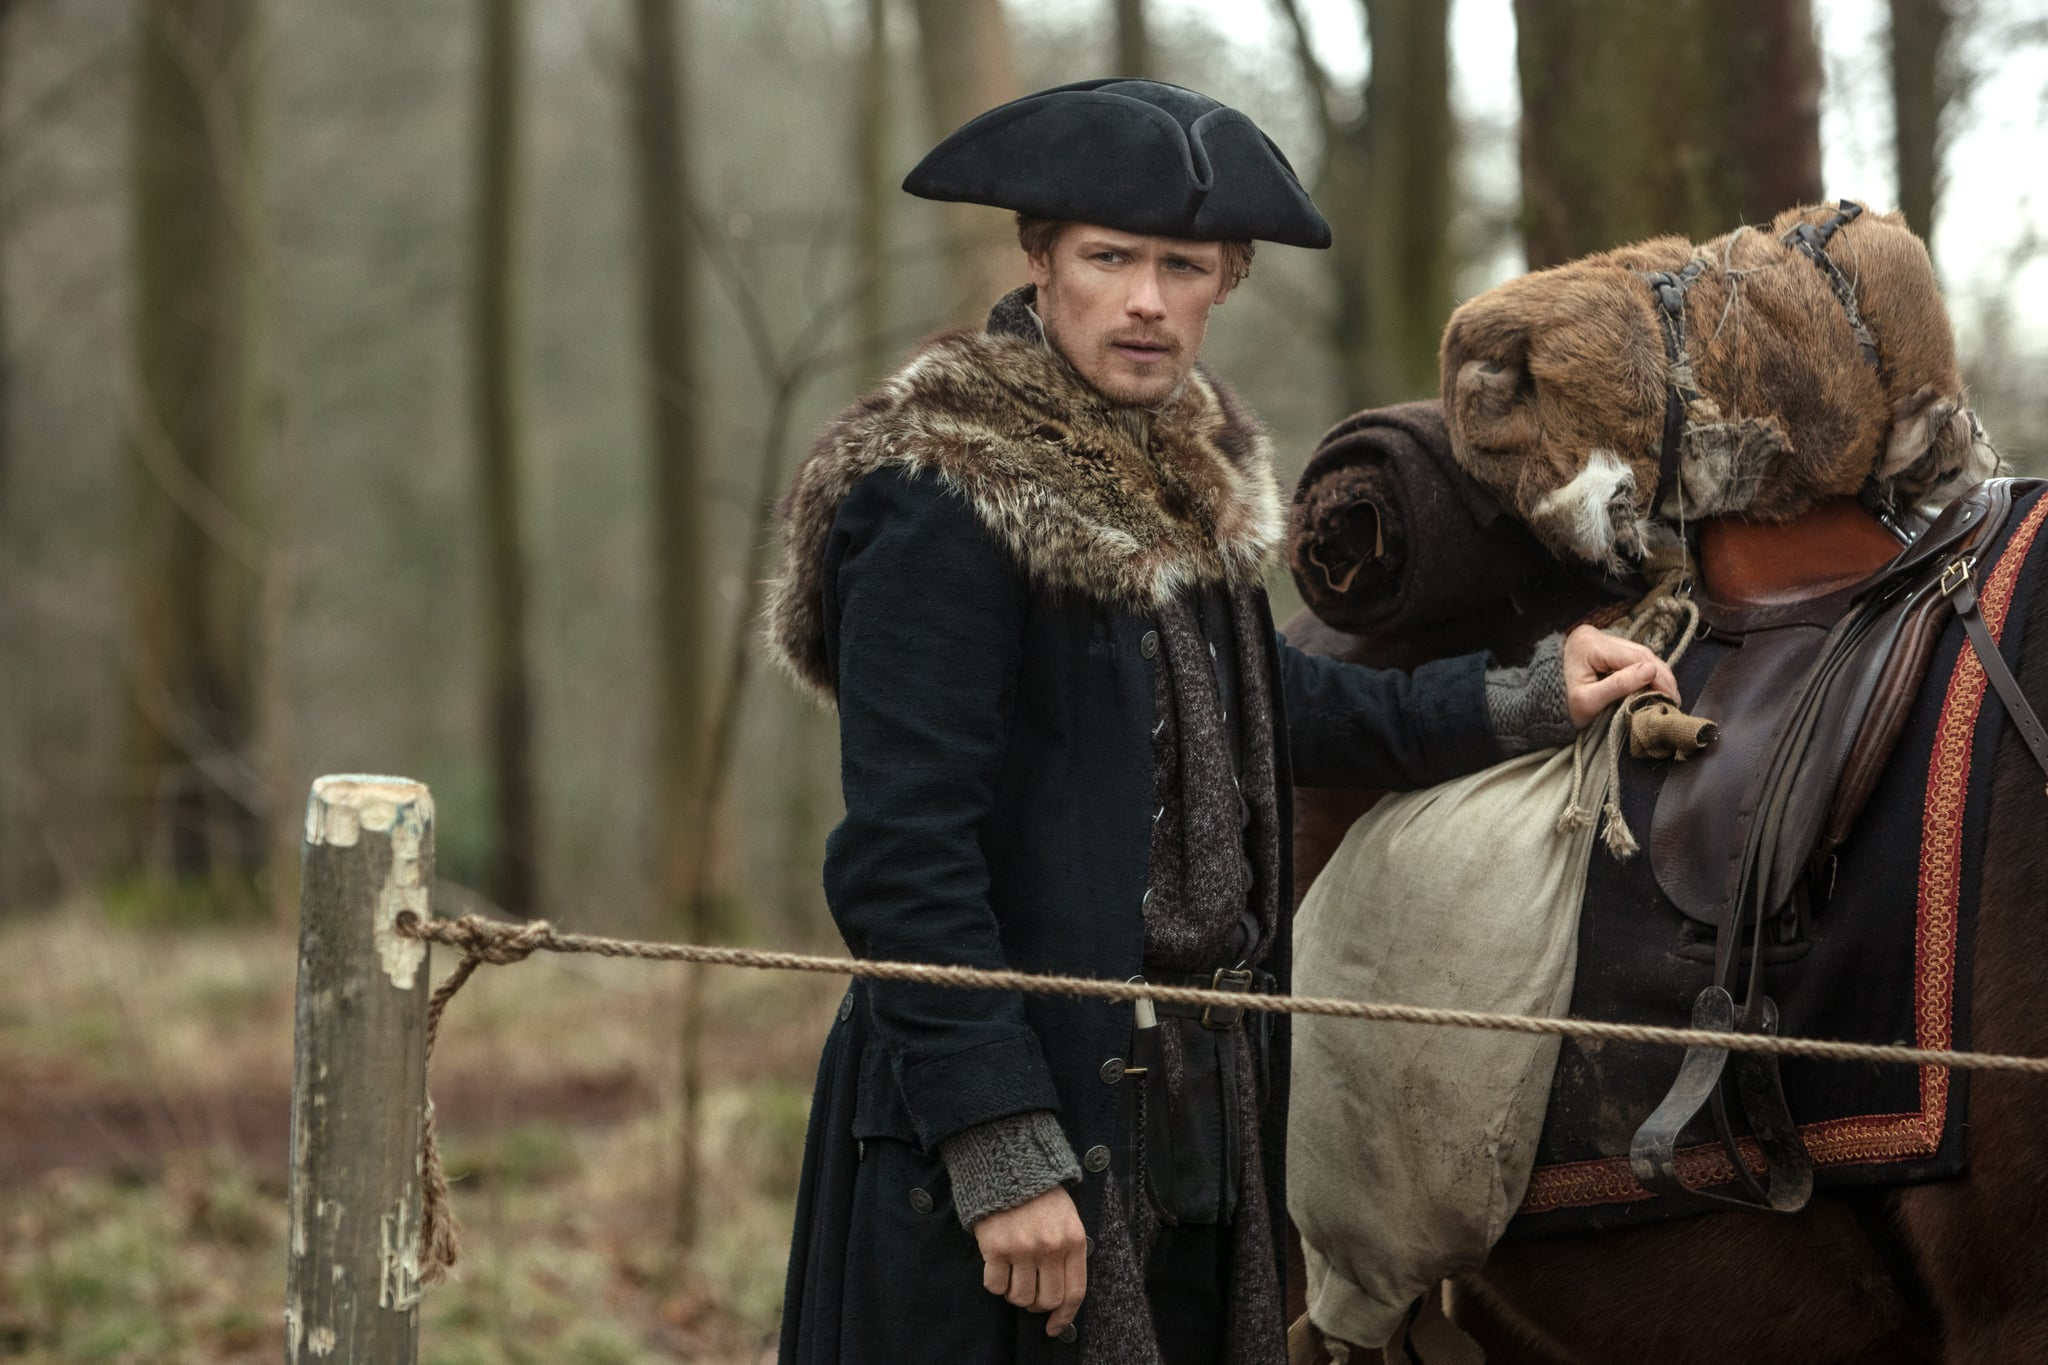 Outlander: Does William Know Jamie Is His Father? Sam Heughan Weighs In